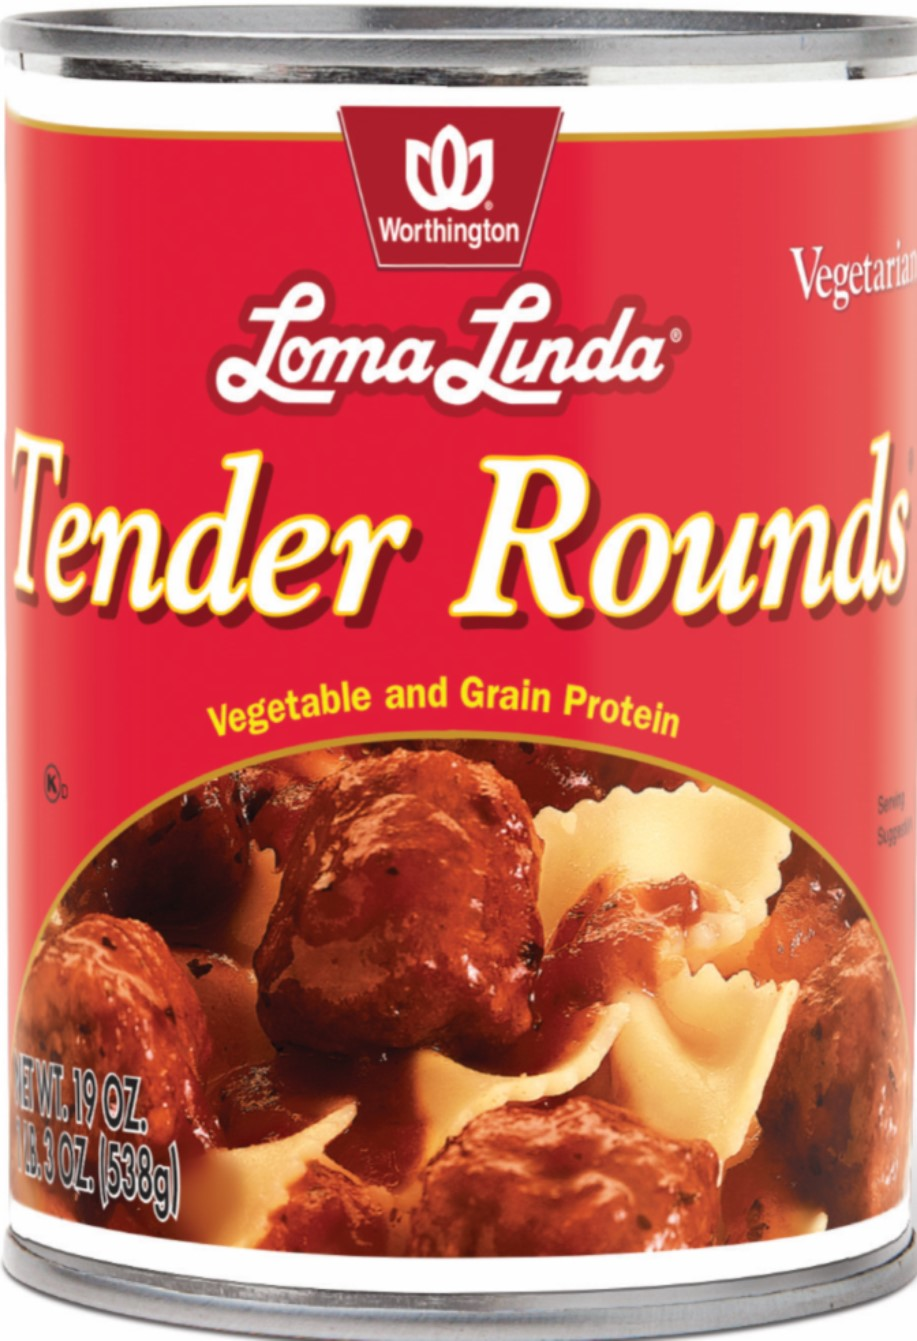 TENDER ROUNDS WITH GRAVY,LOMA LINDA,4556100059